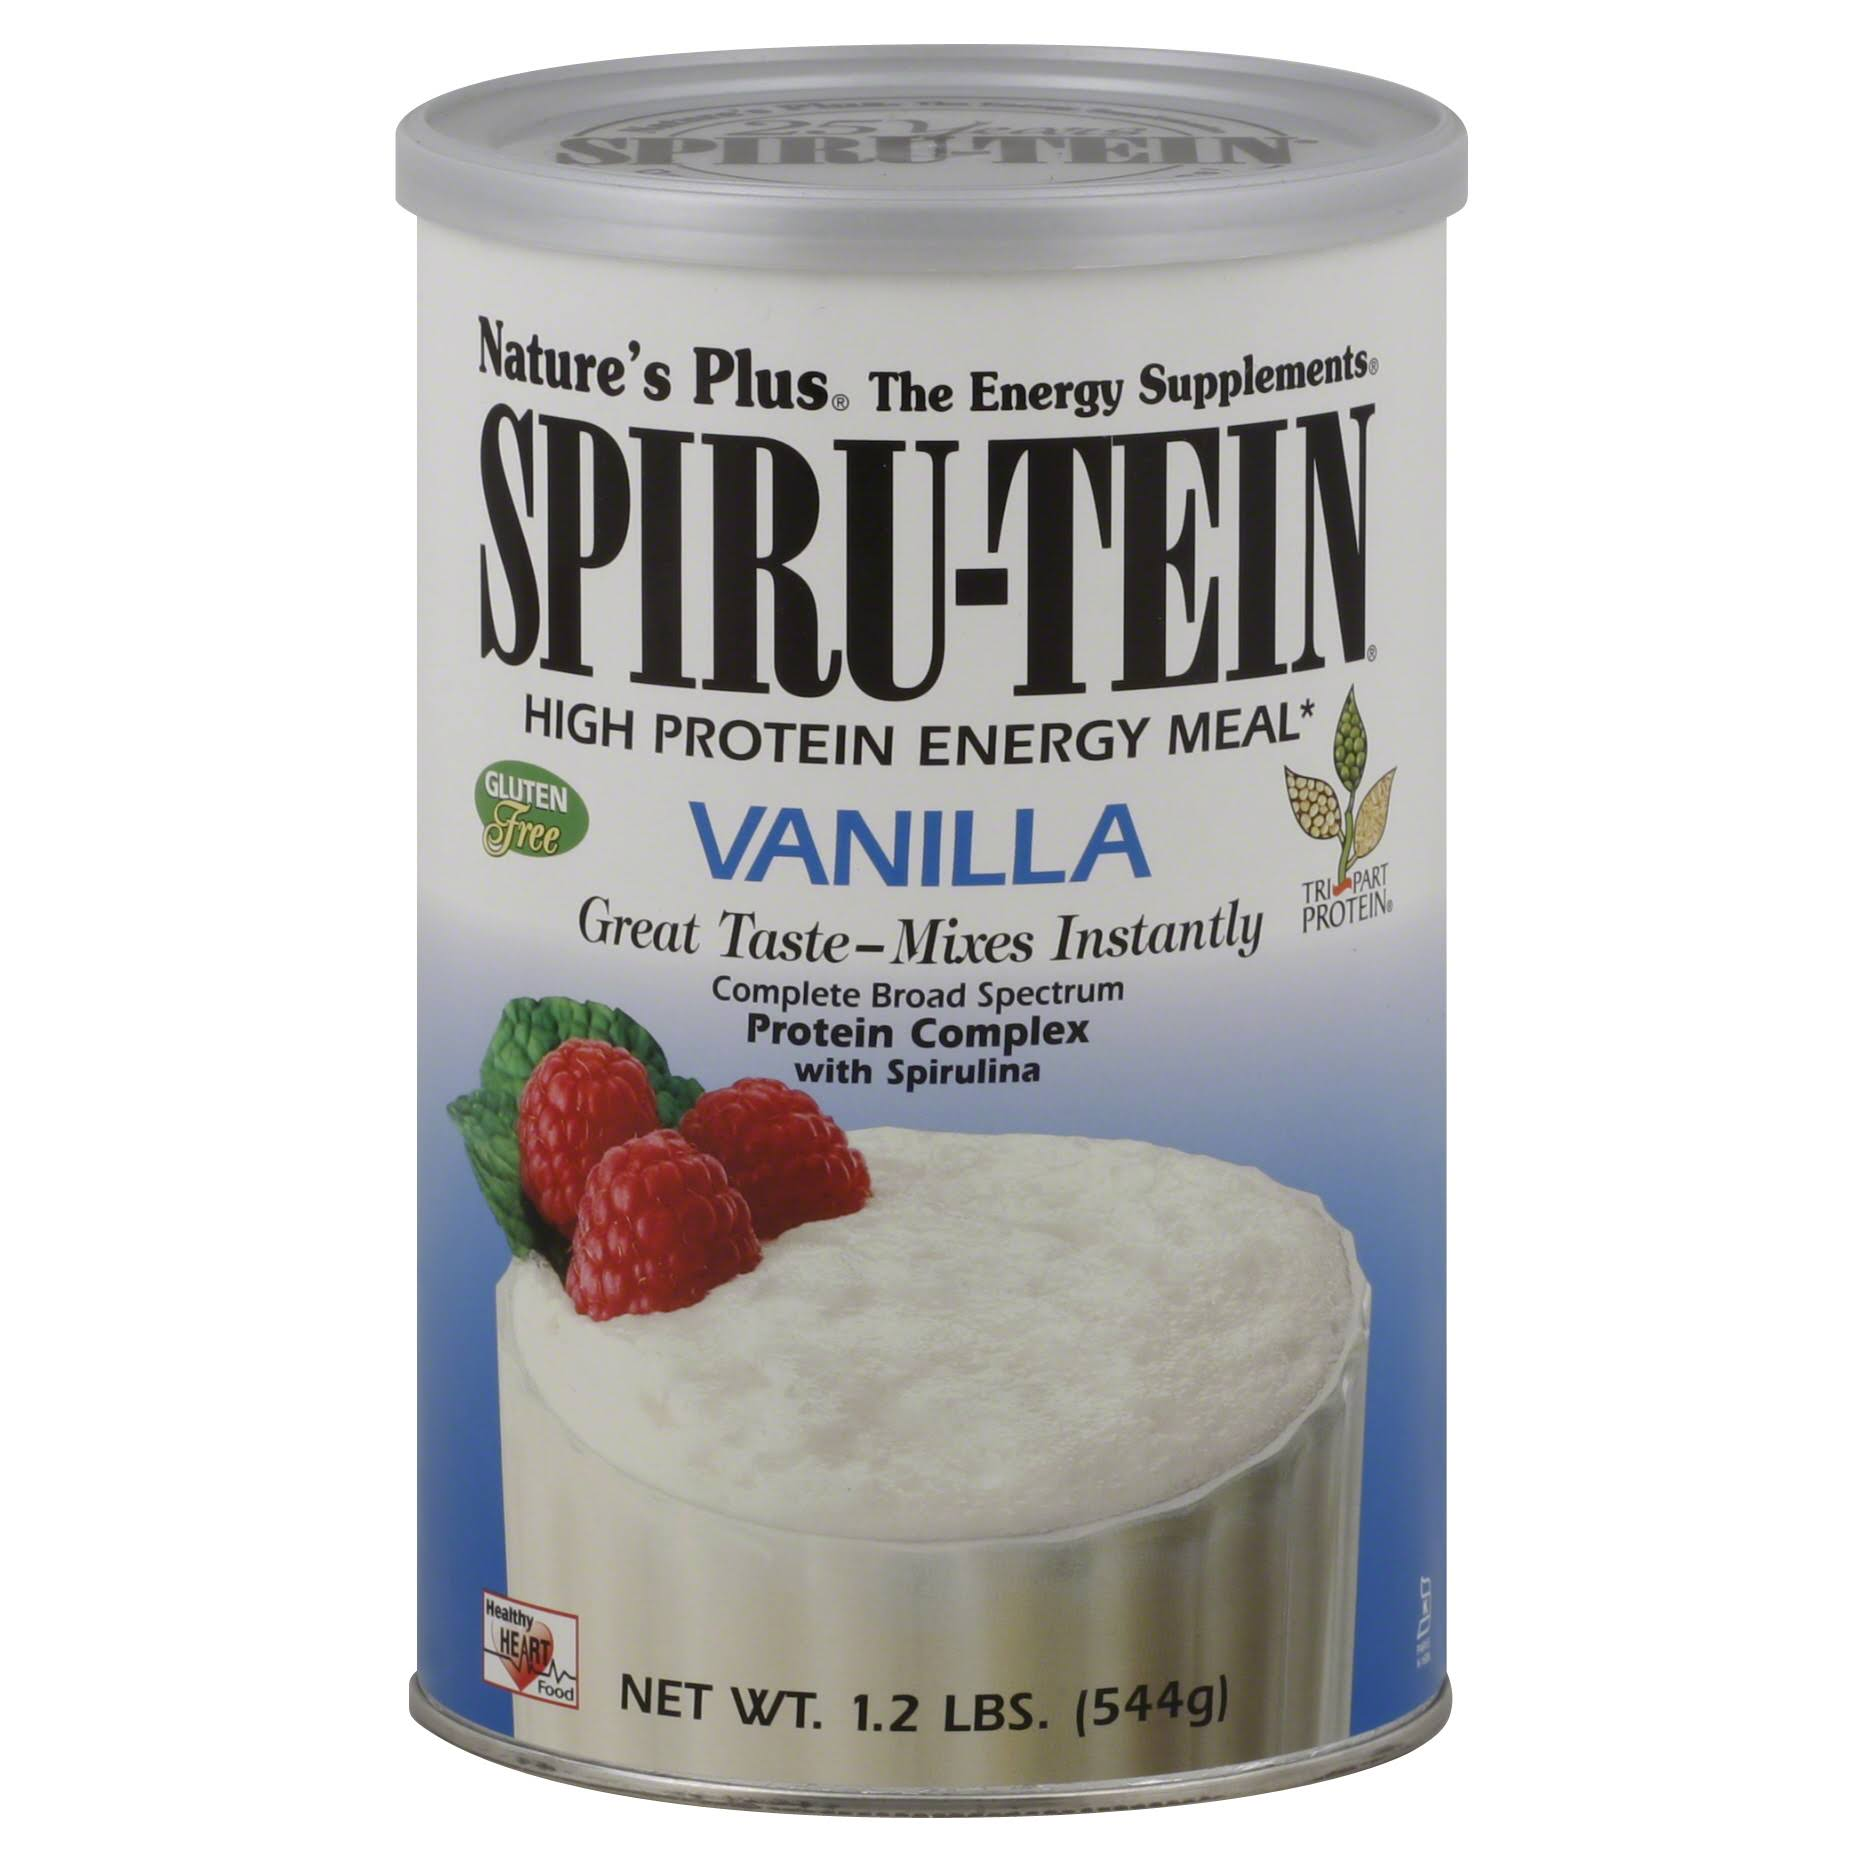 Nature's Plus Spiru-tein Powder - Vanilla